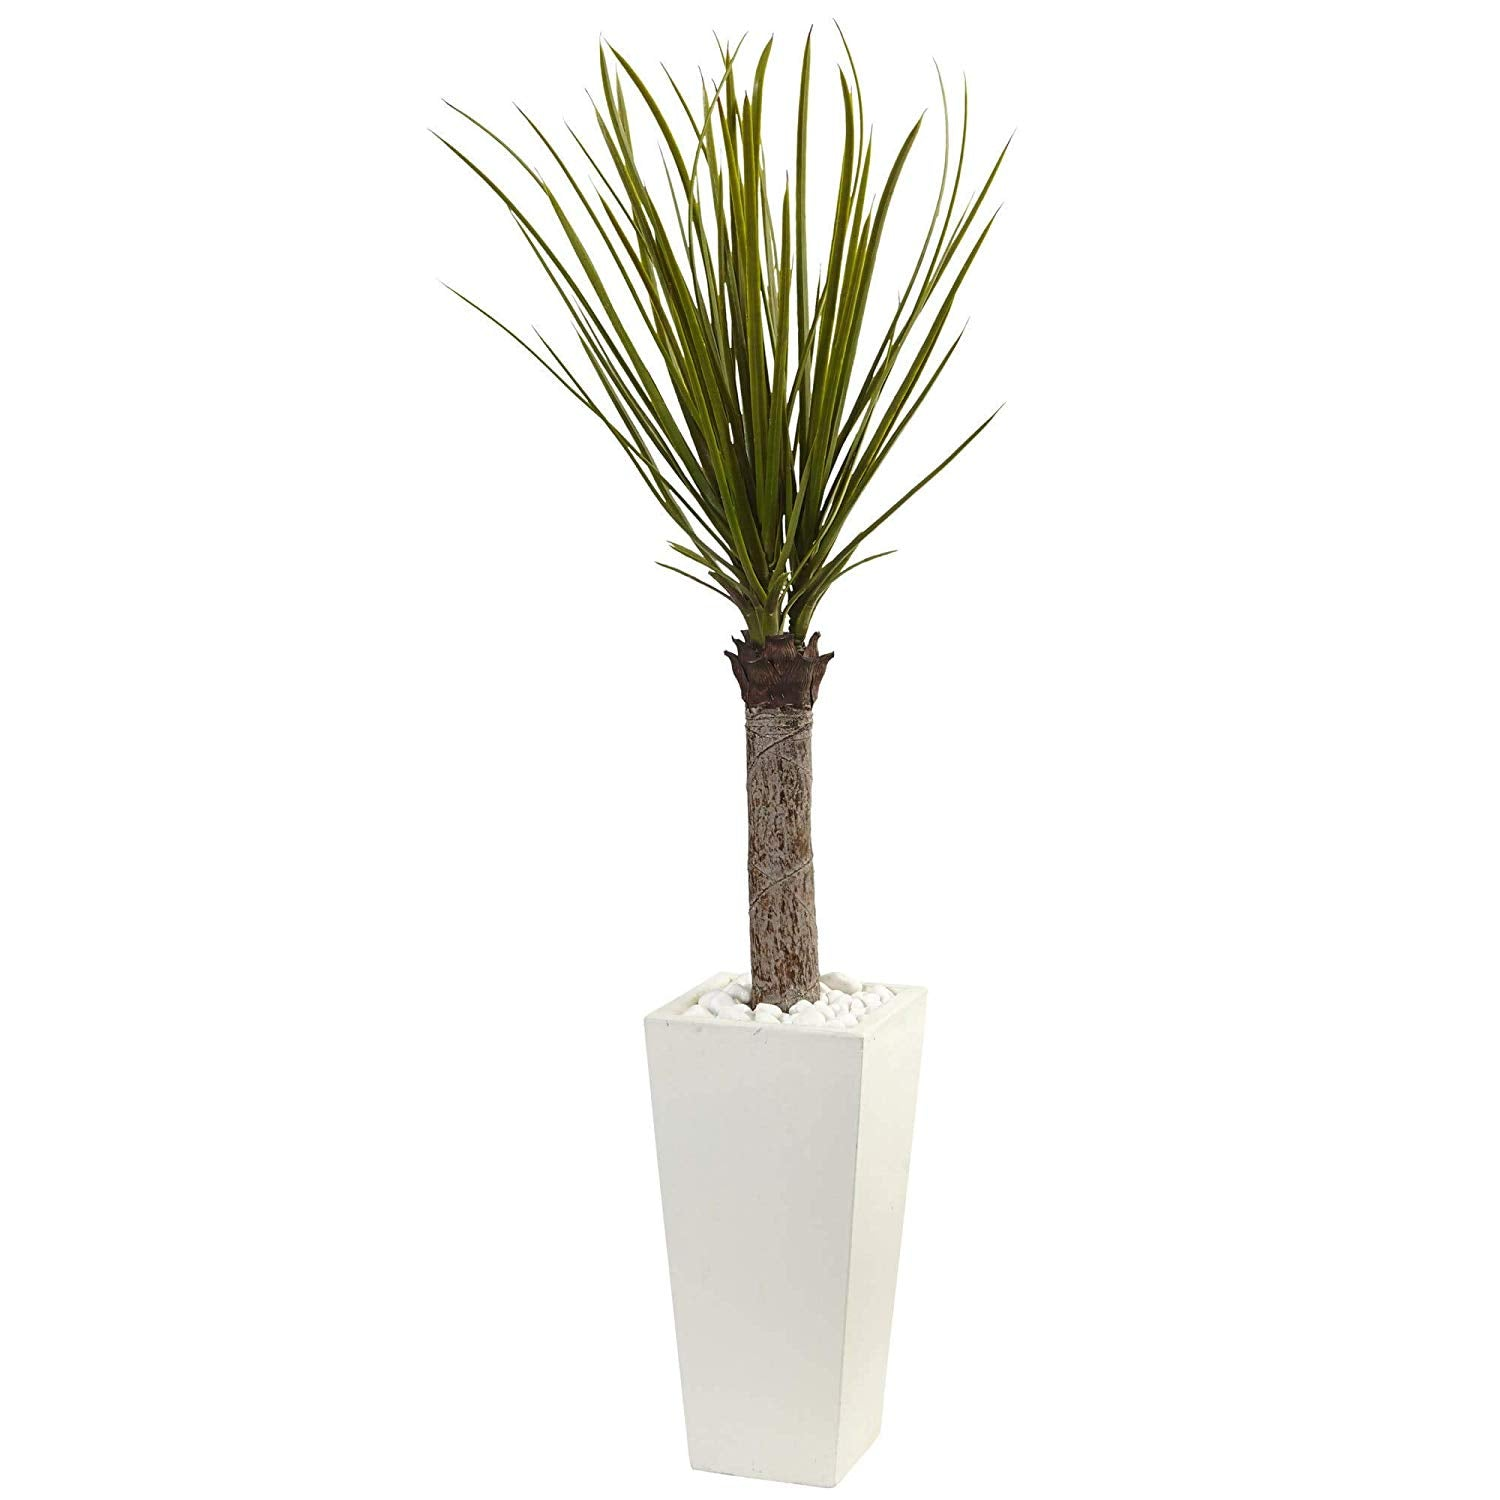 Green Yucca Plant Indoor Palmtree Tower Planter Tropical 4 Foot Silk Plant Floral Asparagaceae Botanical Palm Tree Artificial Nature Oasis